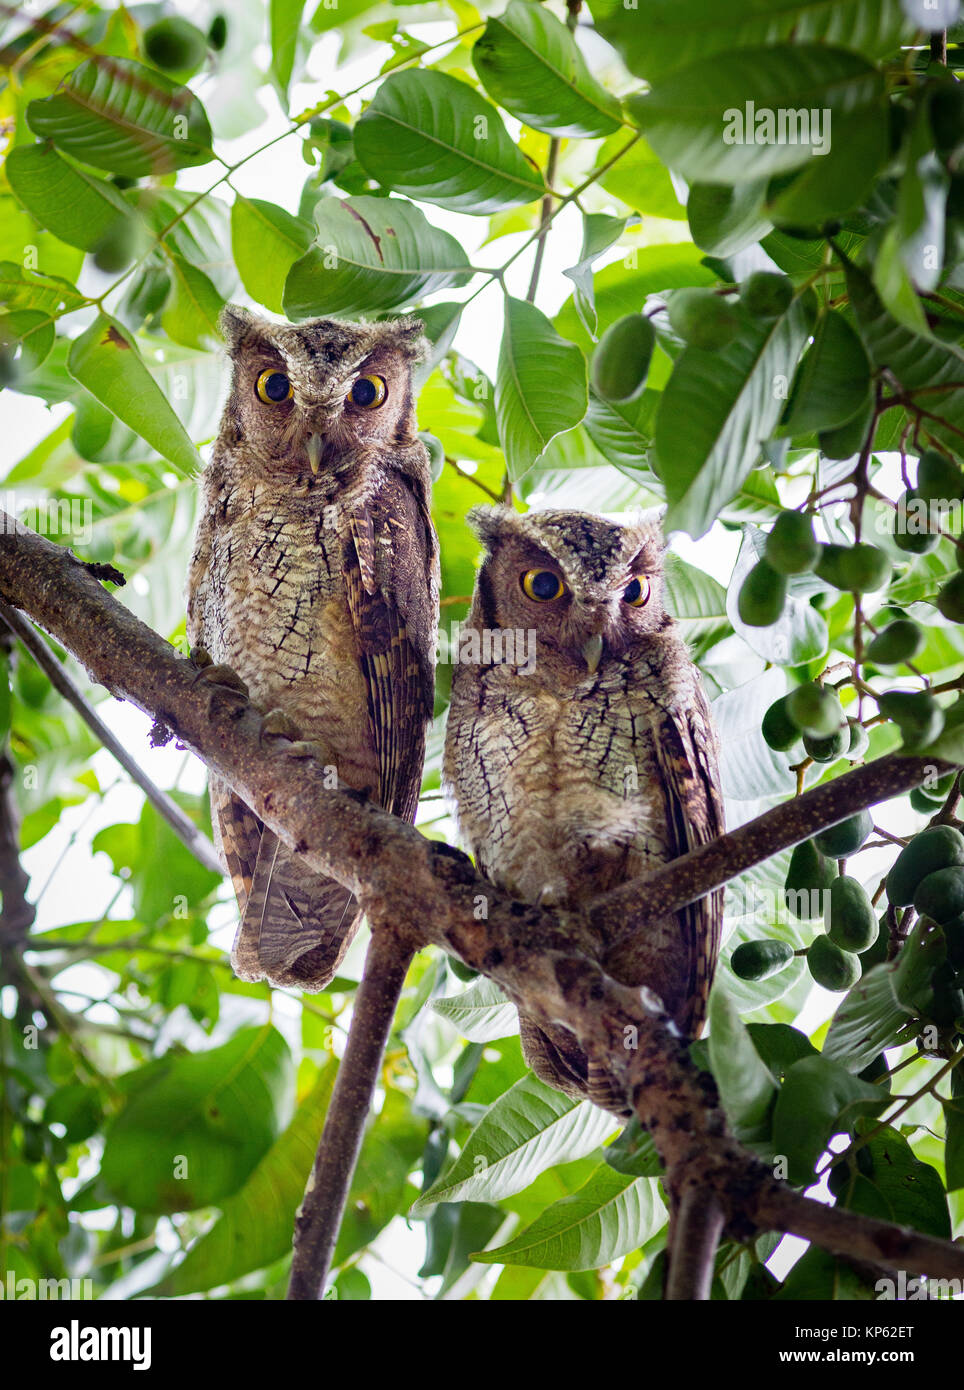 Two Crested Owls Lophostrix cristata peering down from tree branches in the Osa peninsula Costa Rica - Stock Image